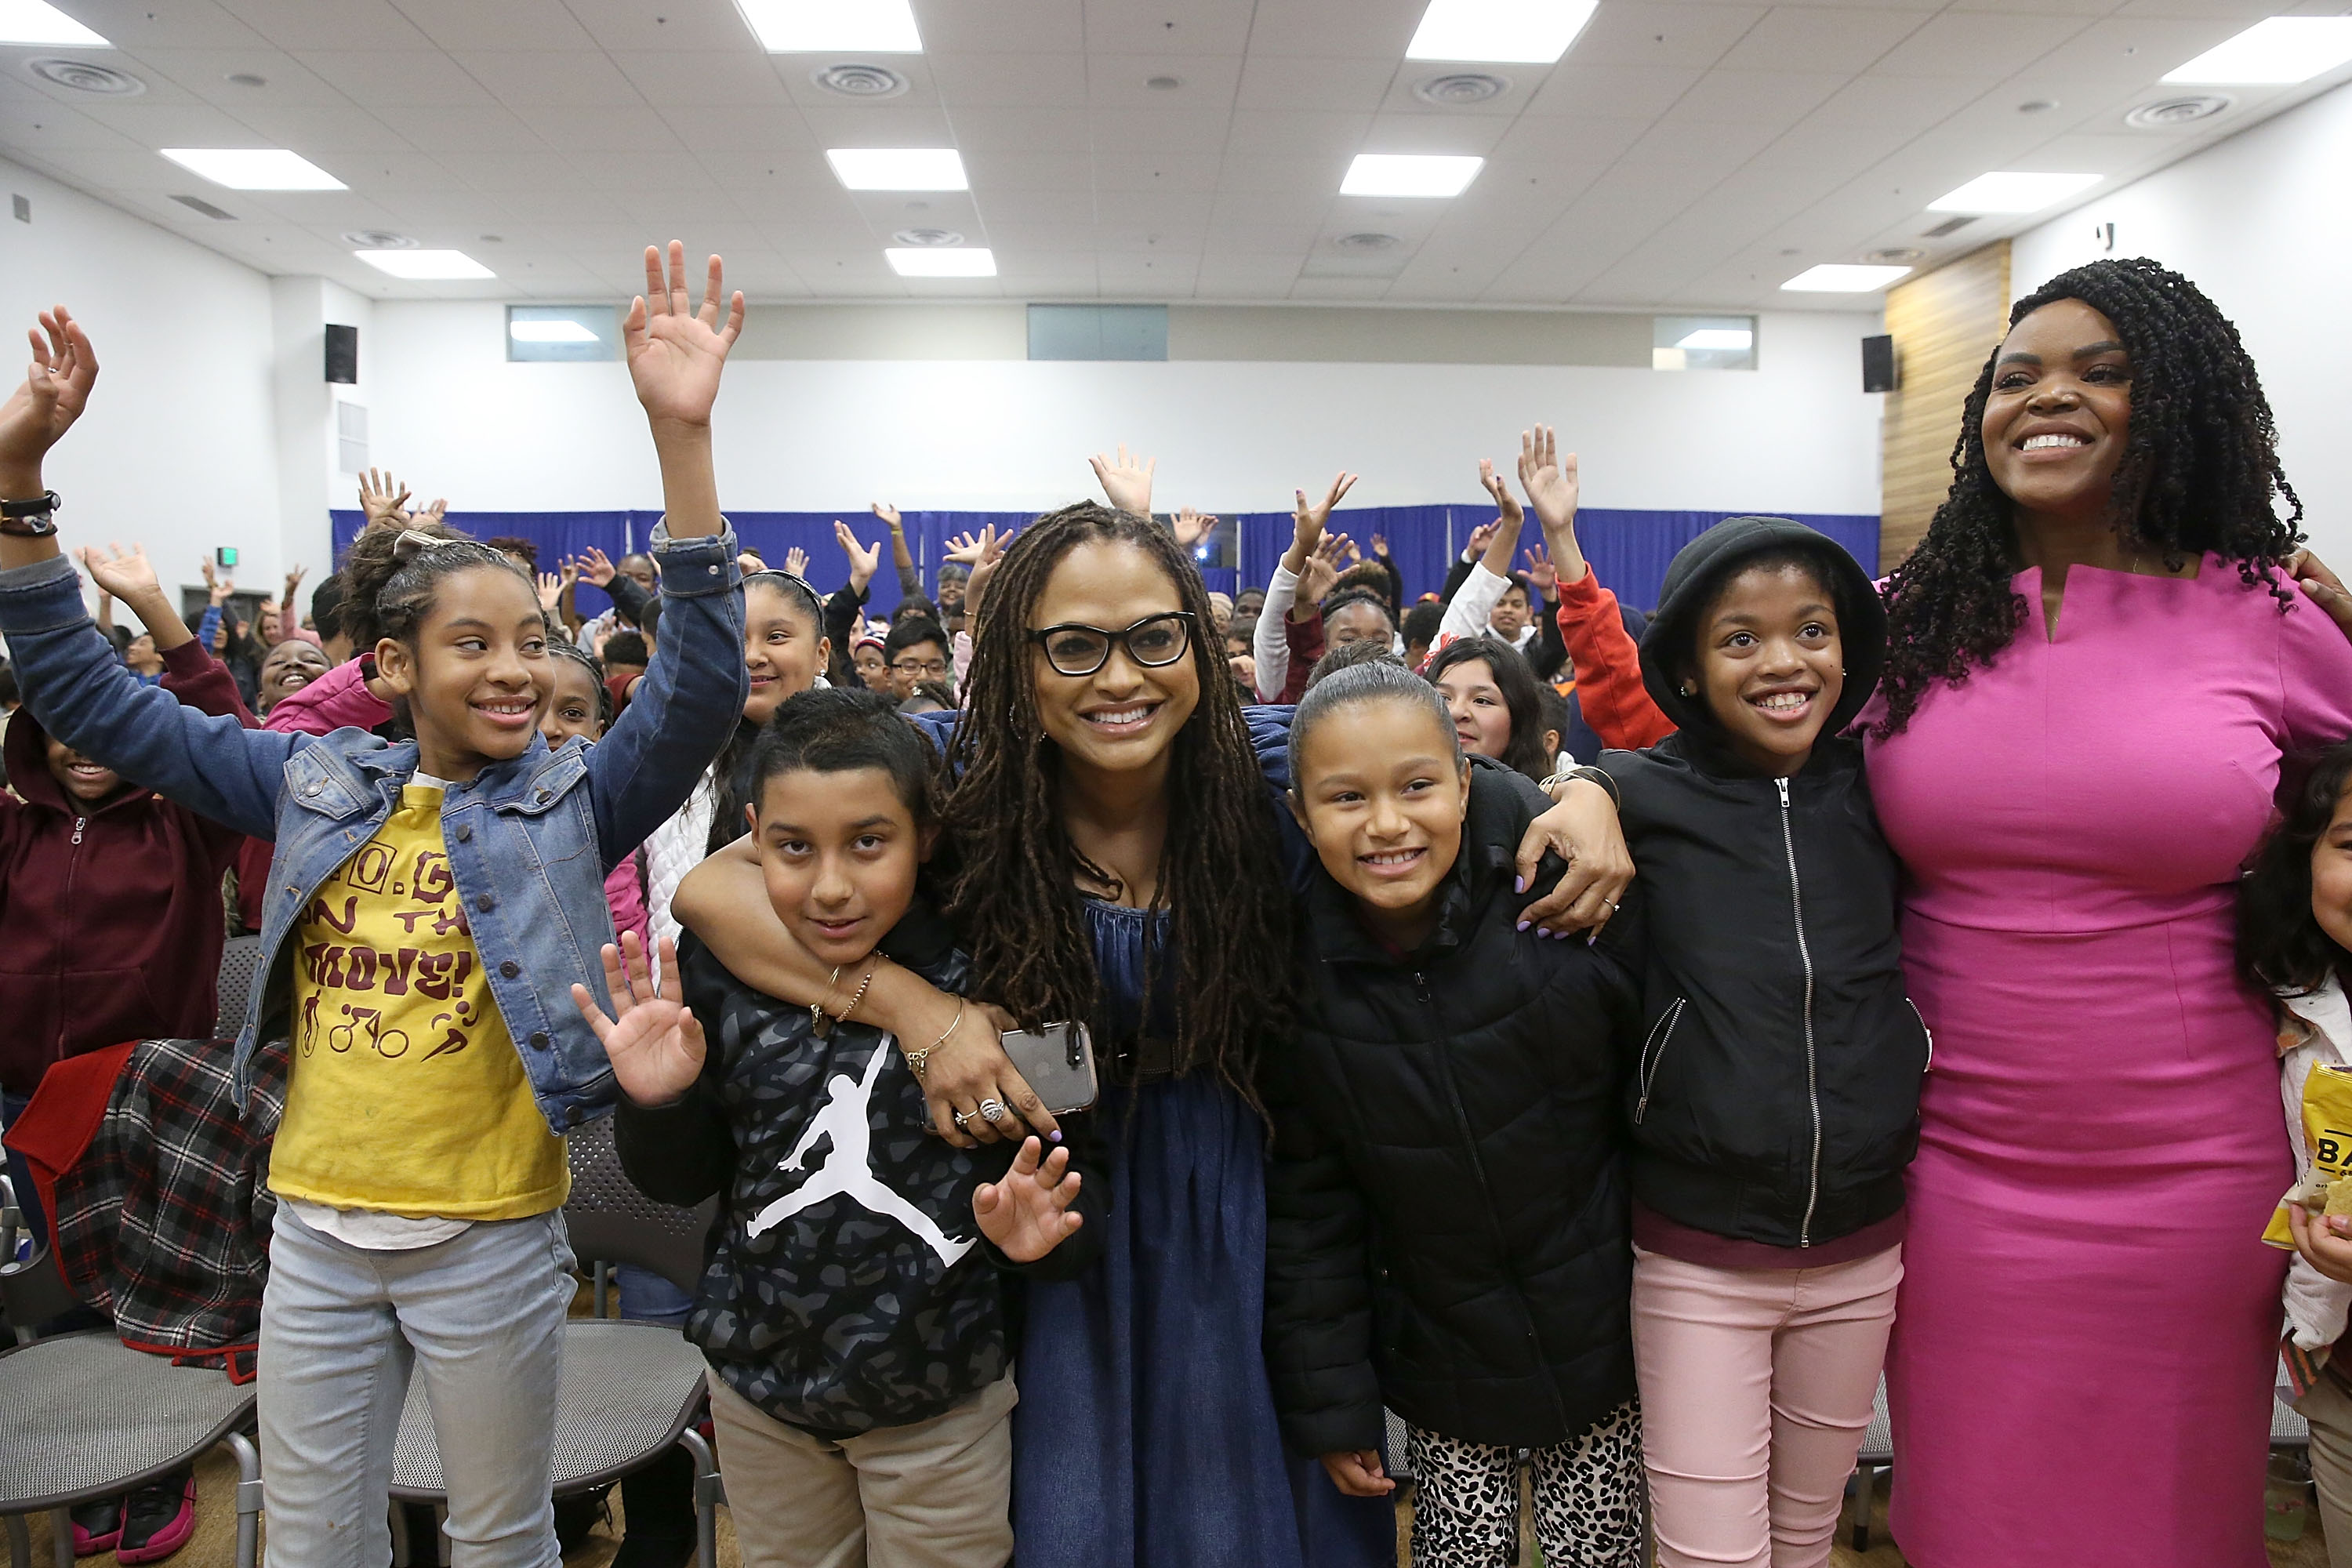 """Director Ava DuVernay and Compton Mayor Aja Brown attend a special advance private screening of """"A Wrinkle in Time"""" attended by students from various middle schools around the city of Compton on March 2, 2018. (Credit: Jesse Grant/Getty Images for Disney)"""